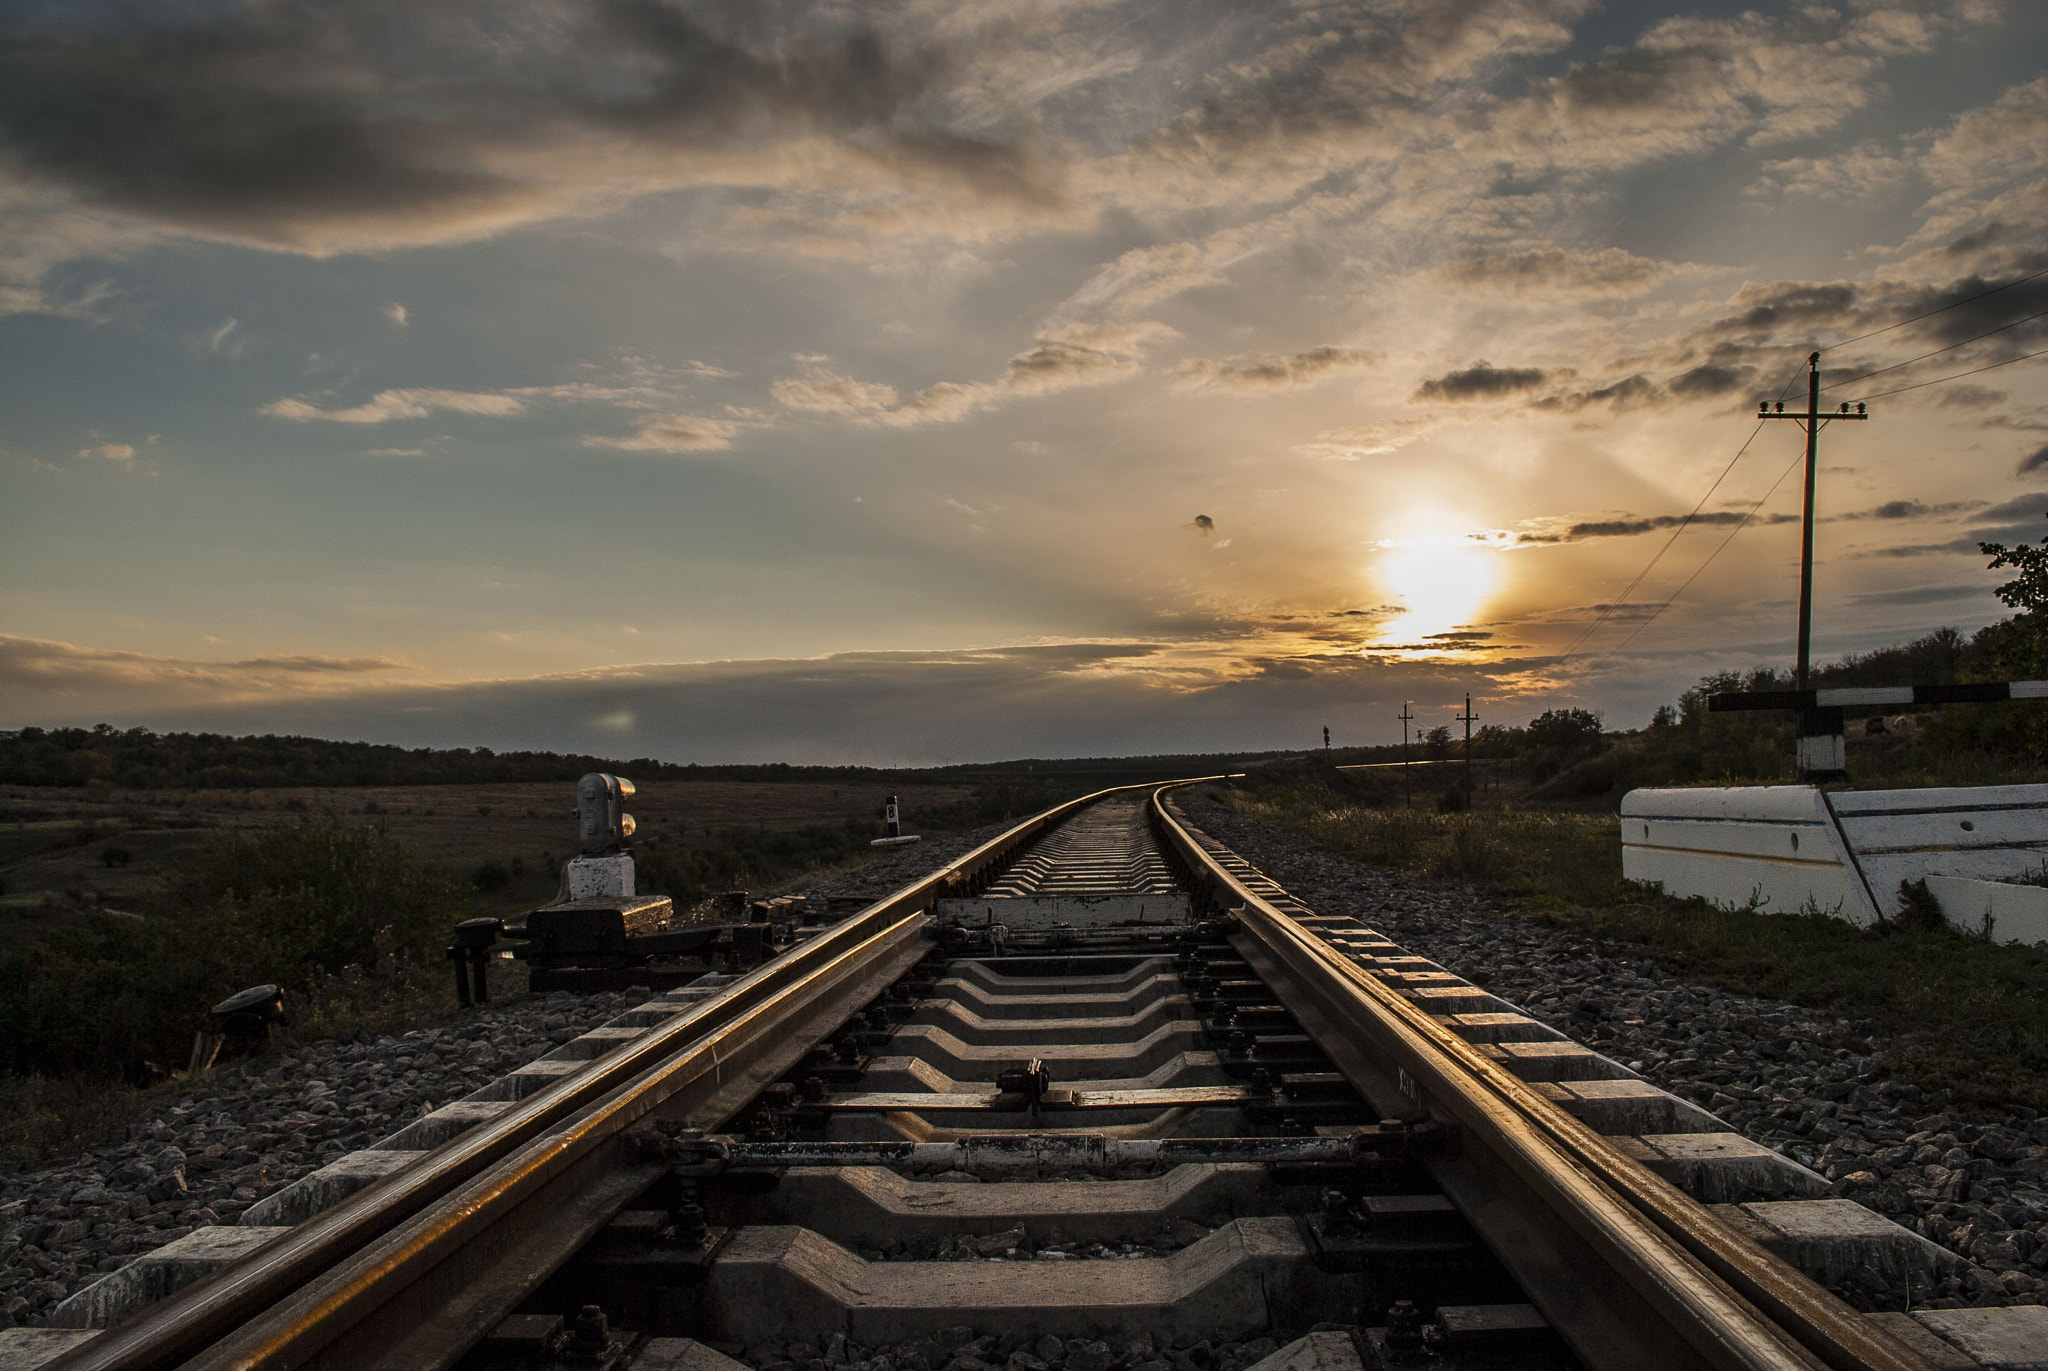 Photograph On the old railway by Krayan Storcheus on 500px